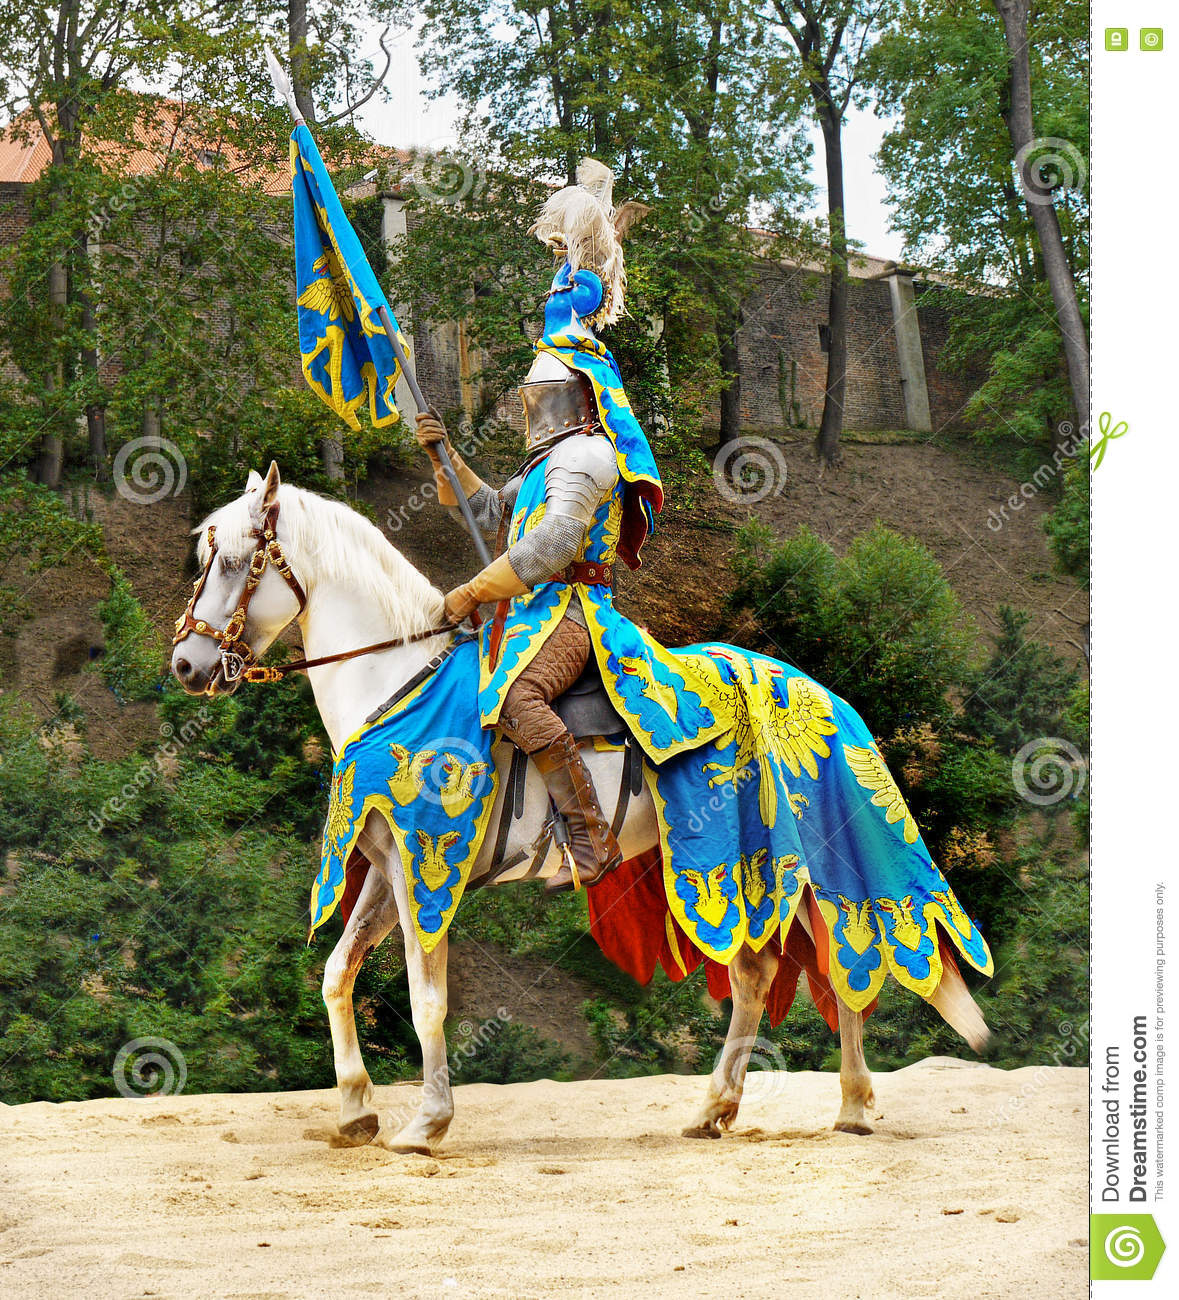 Medieval Knight Horse Riding Prague Castle Editorial Photo Image Of Historical Riding 75816036